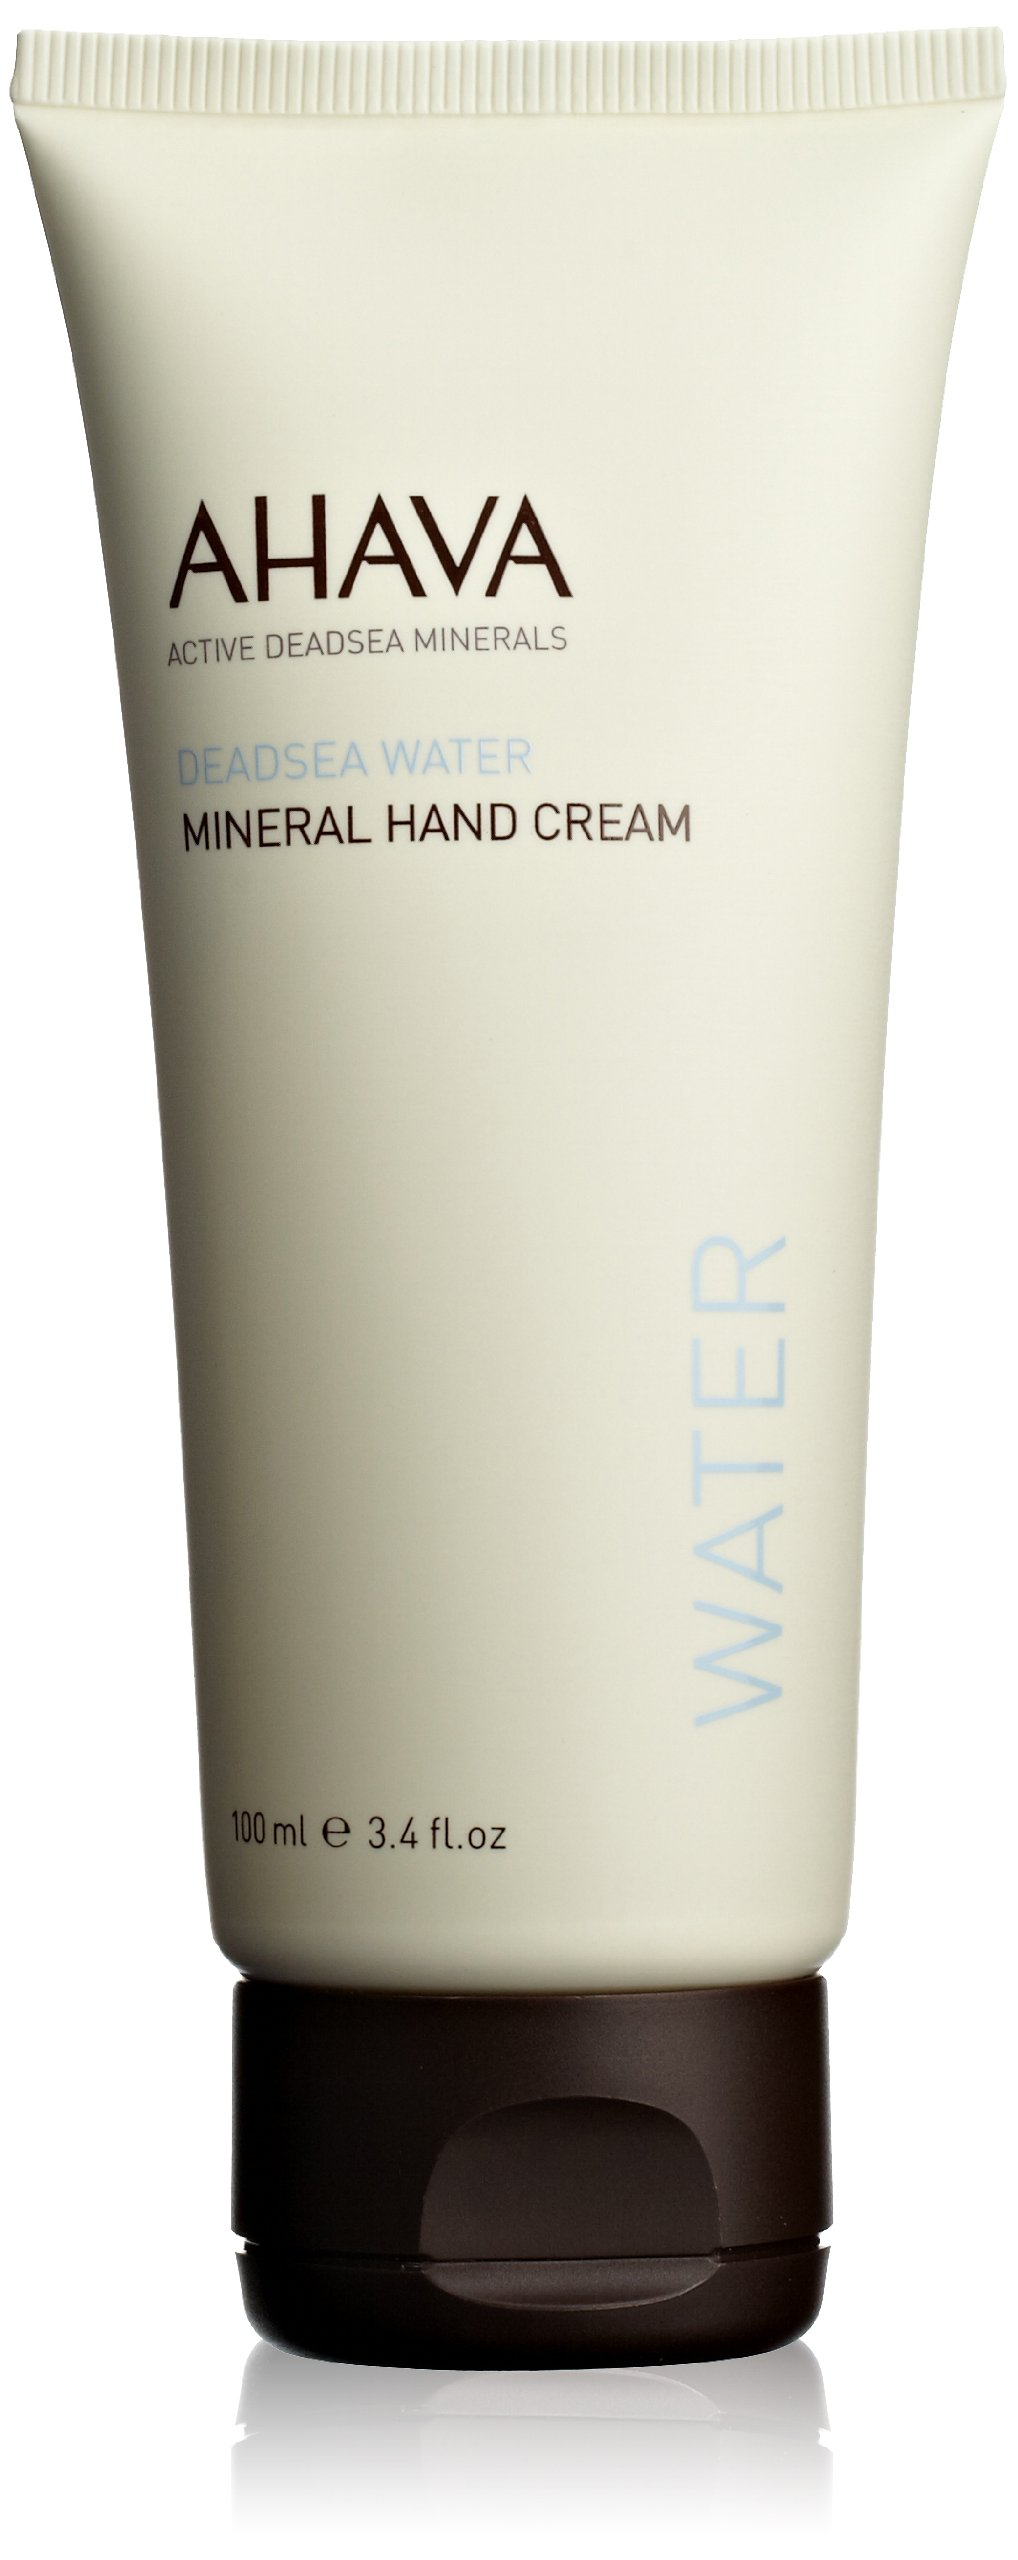 AHAVA Mineral Hand Cream with Active Dead Sea Minerals